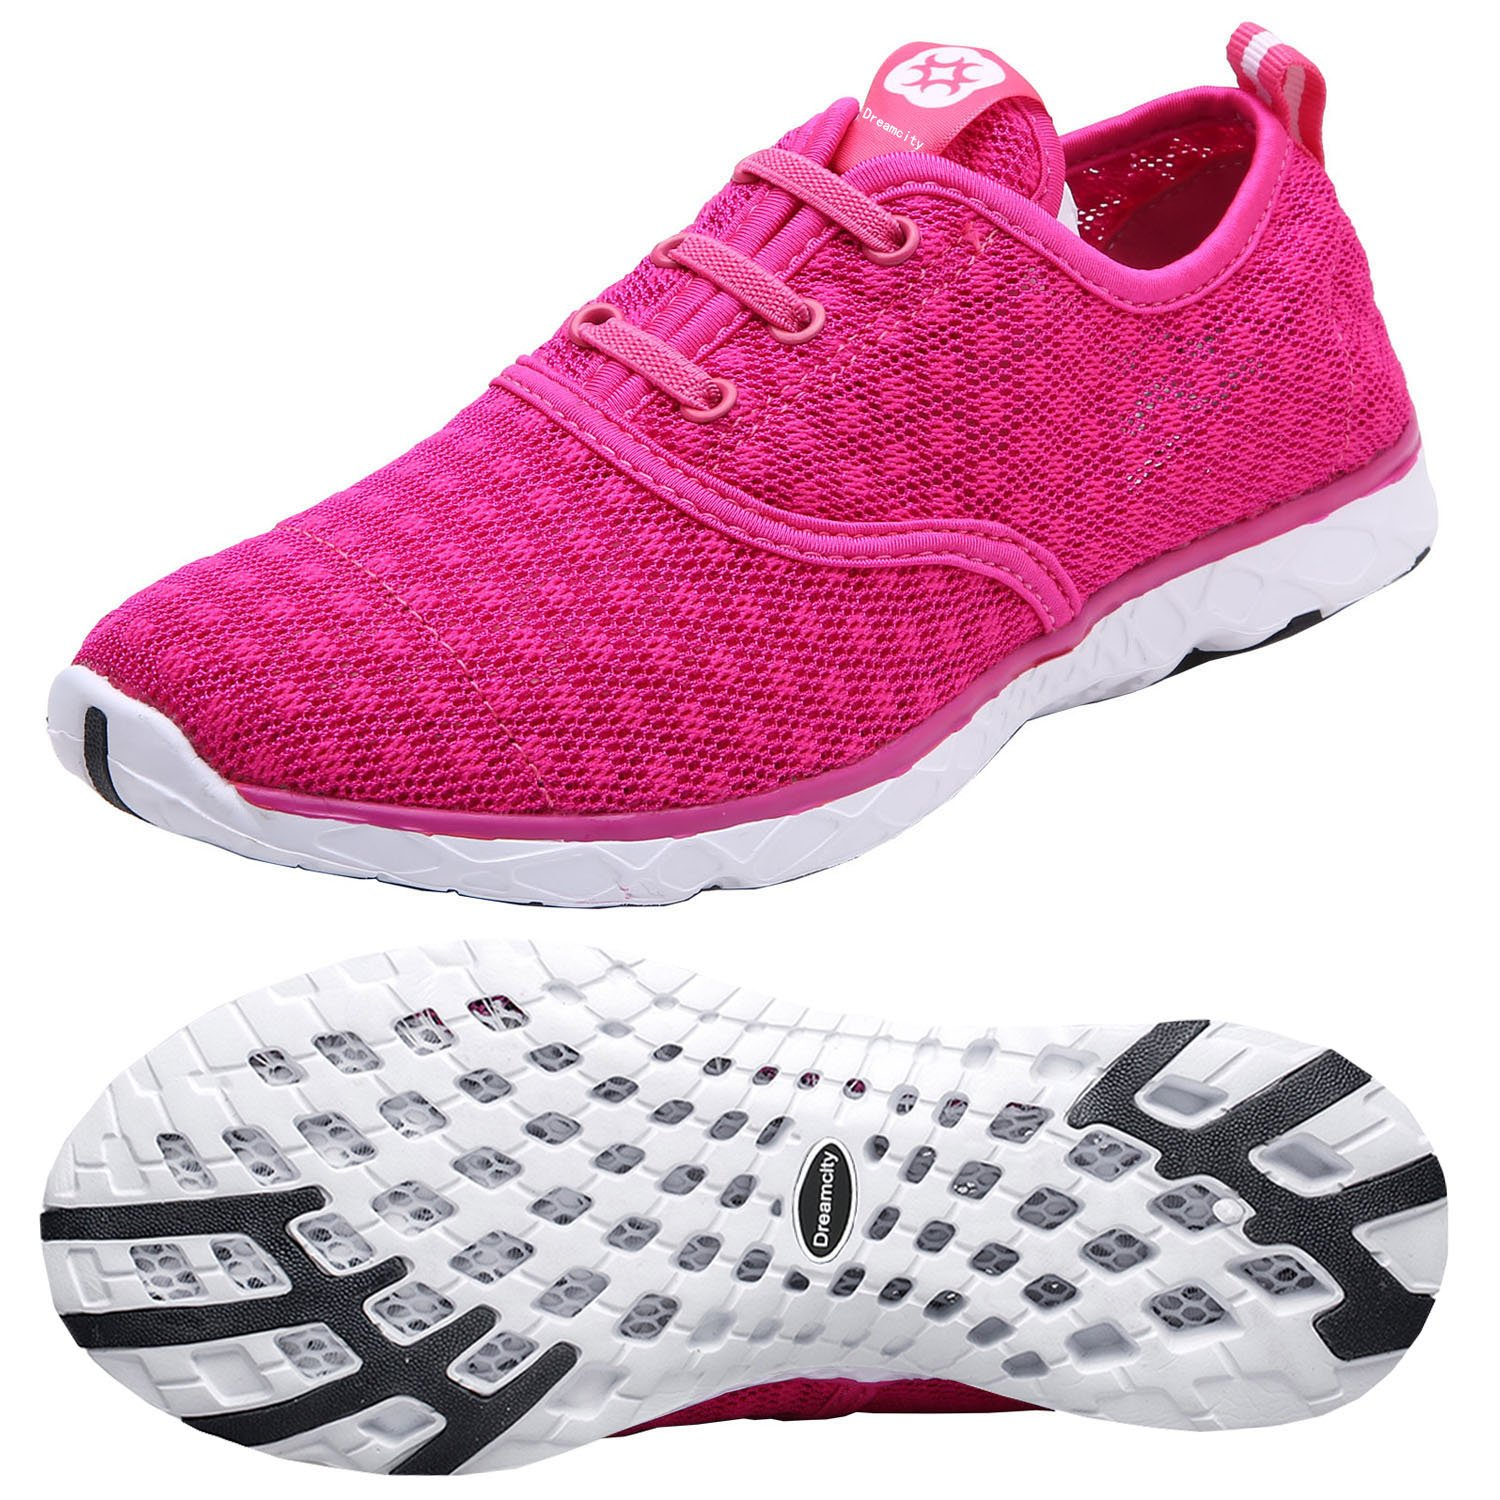 Dreamcity Women's Water Shoes Athletic Sport Lightweight Walking Shoes B01N34W66V 6.5 B(M) US,Rose Red